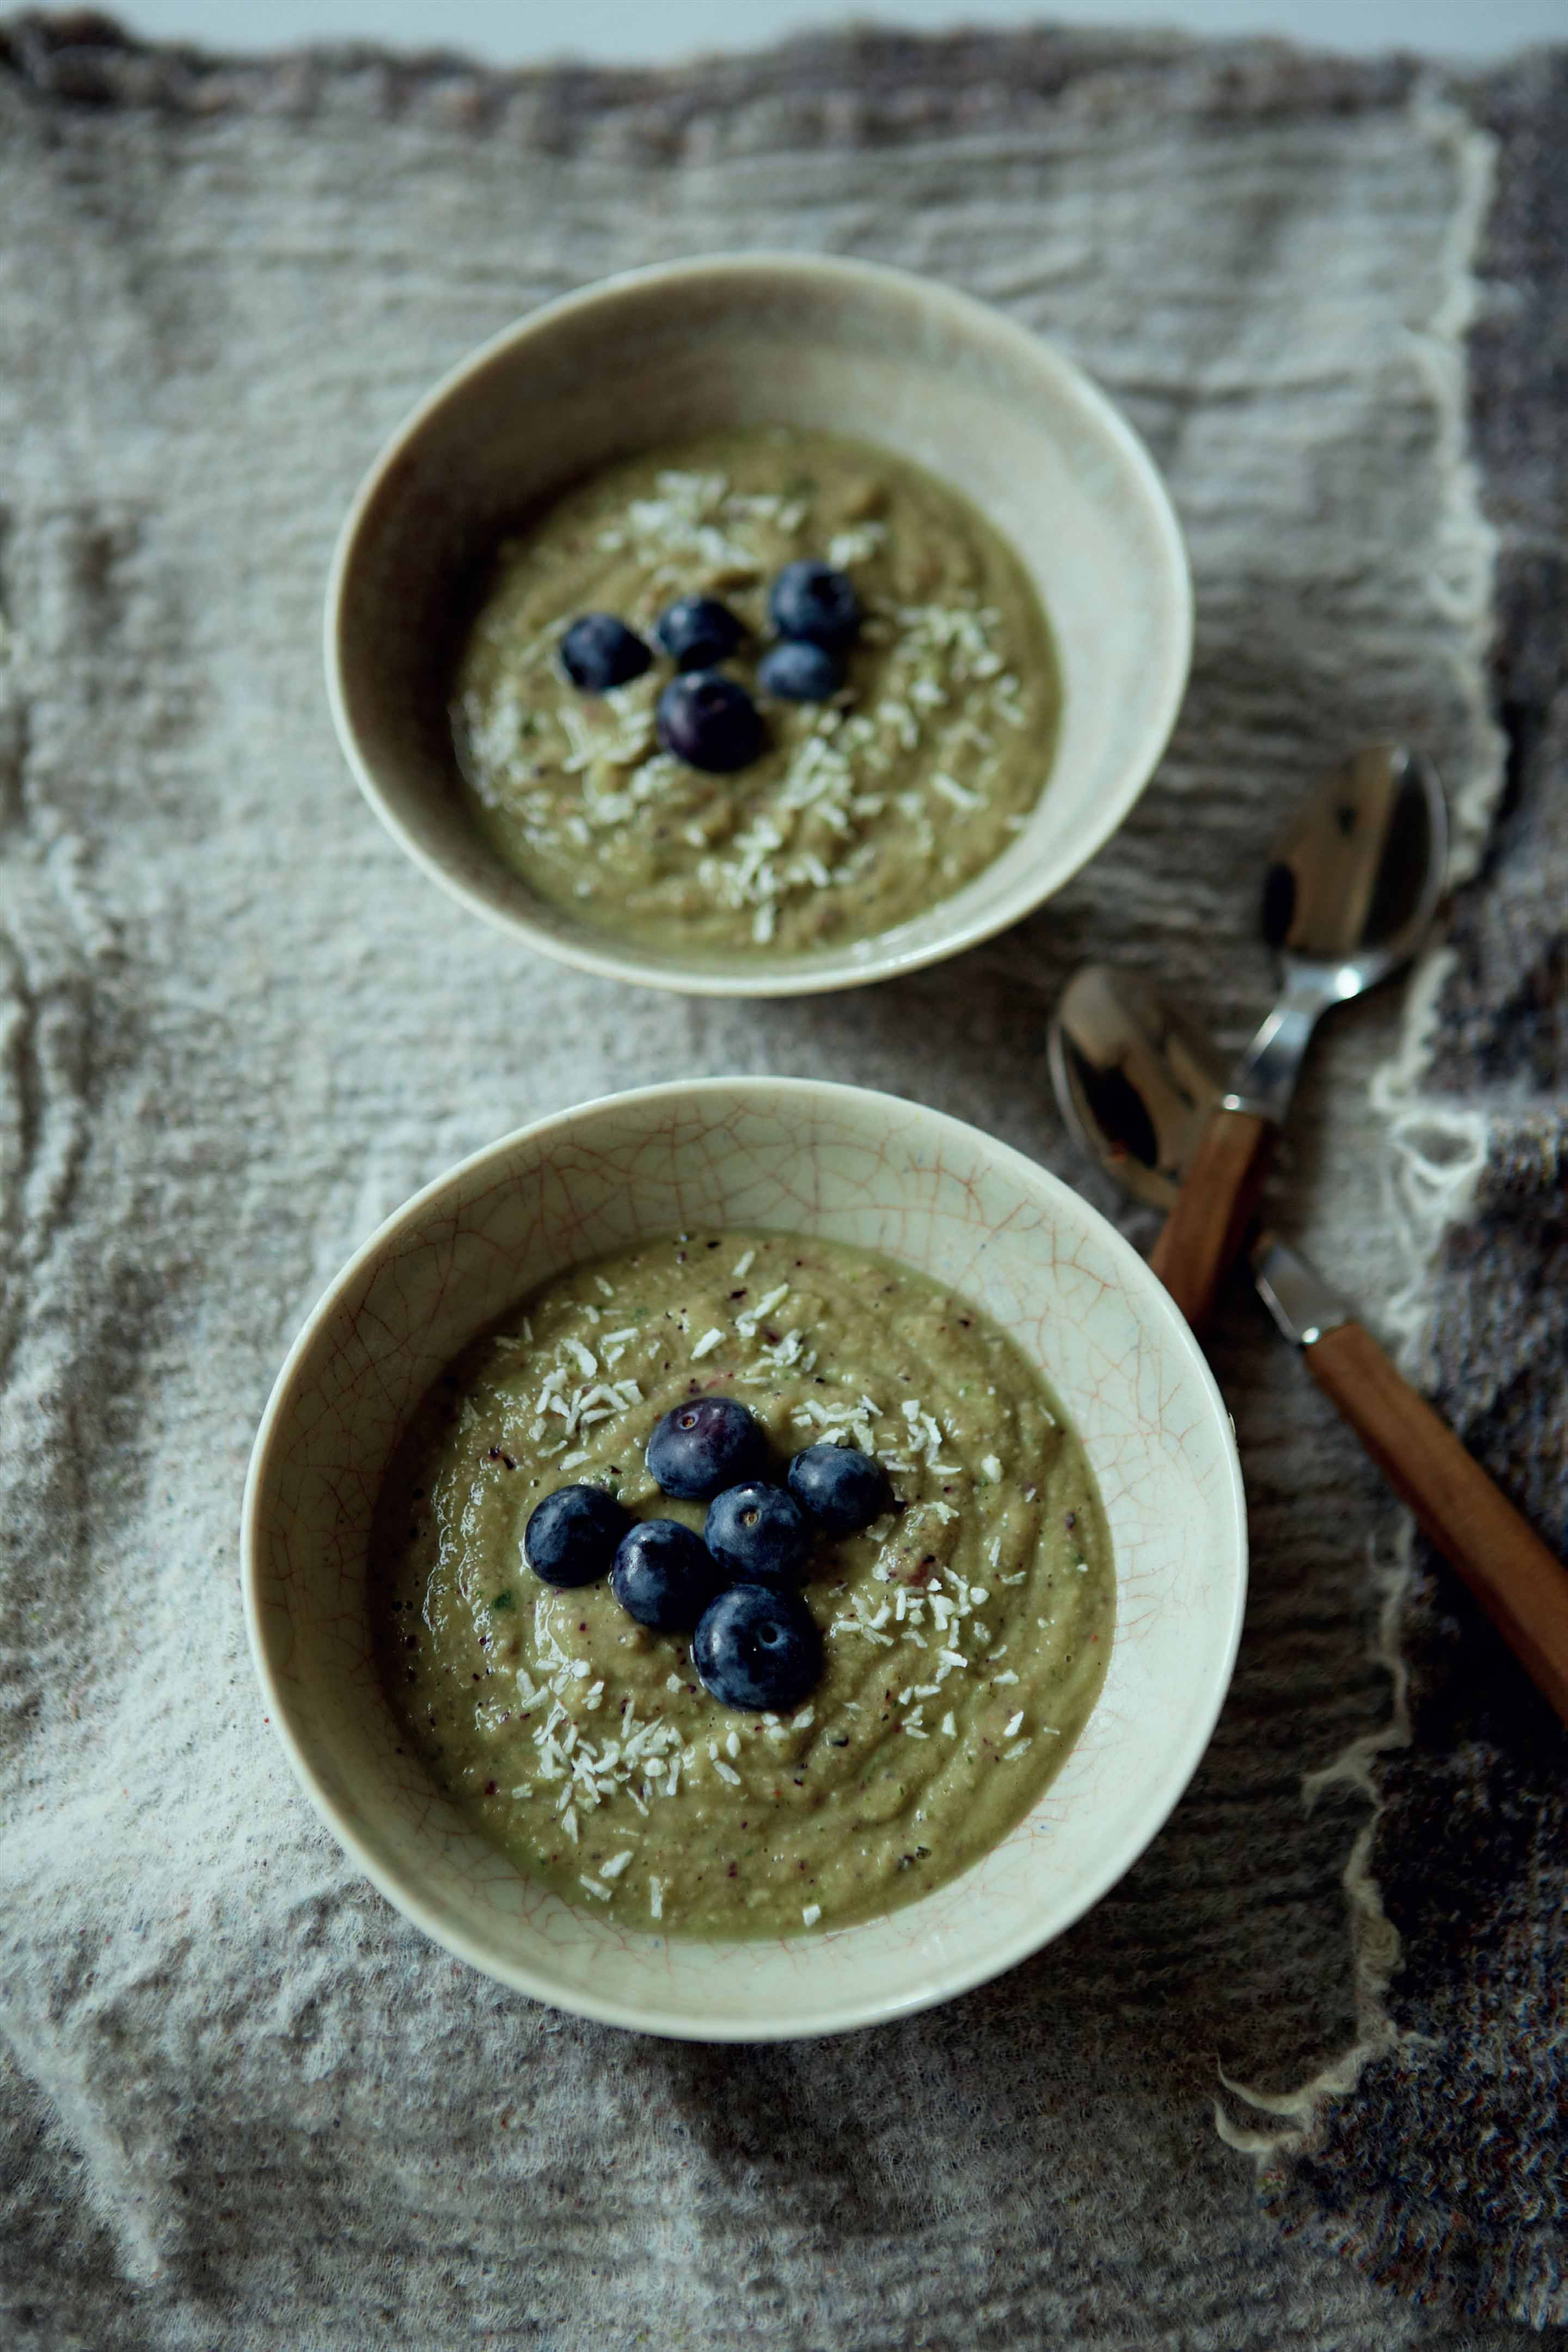 Creamy breakfast Bowl with basil and blueberries